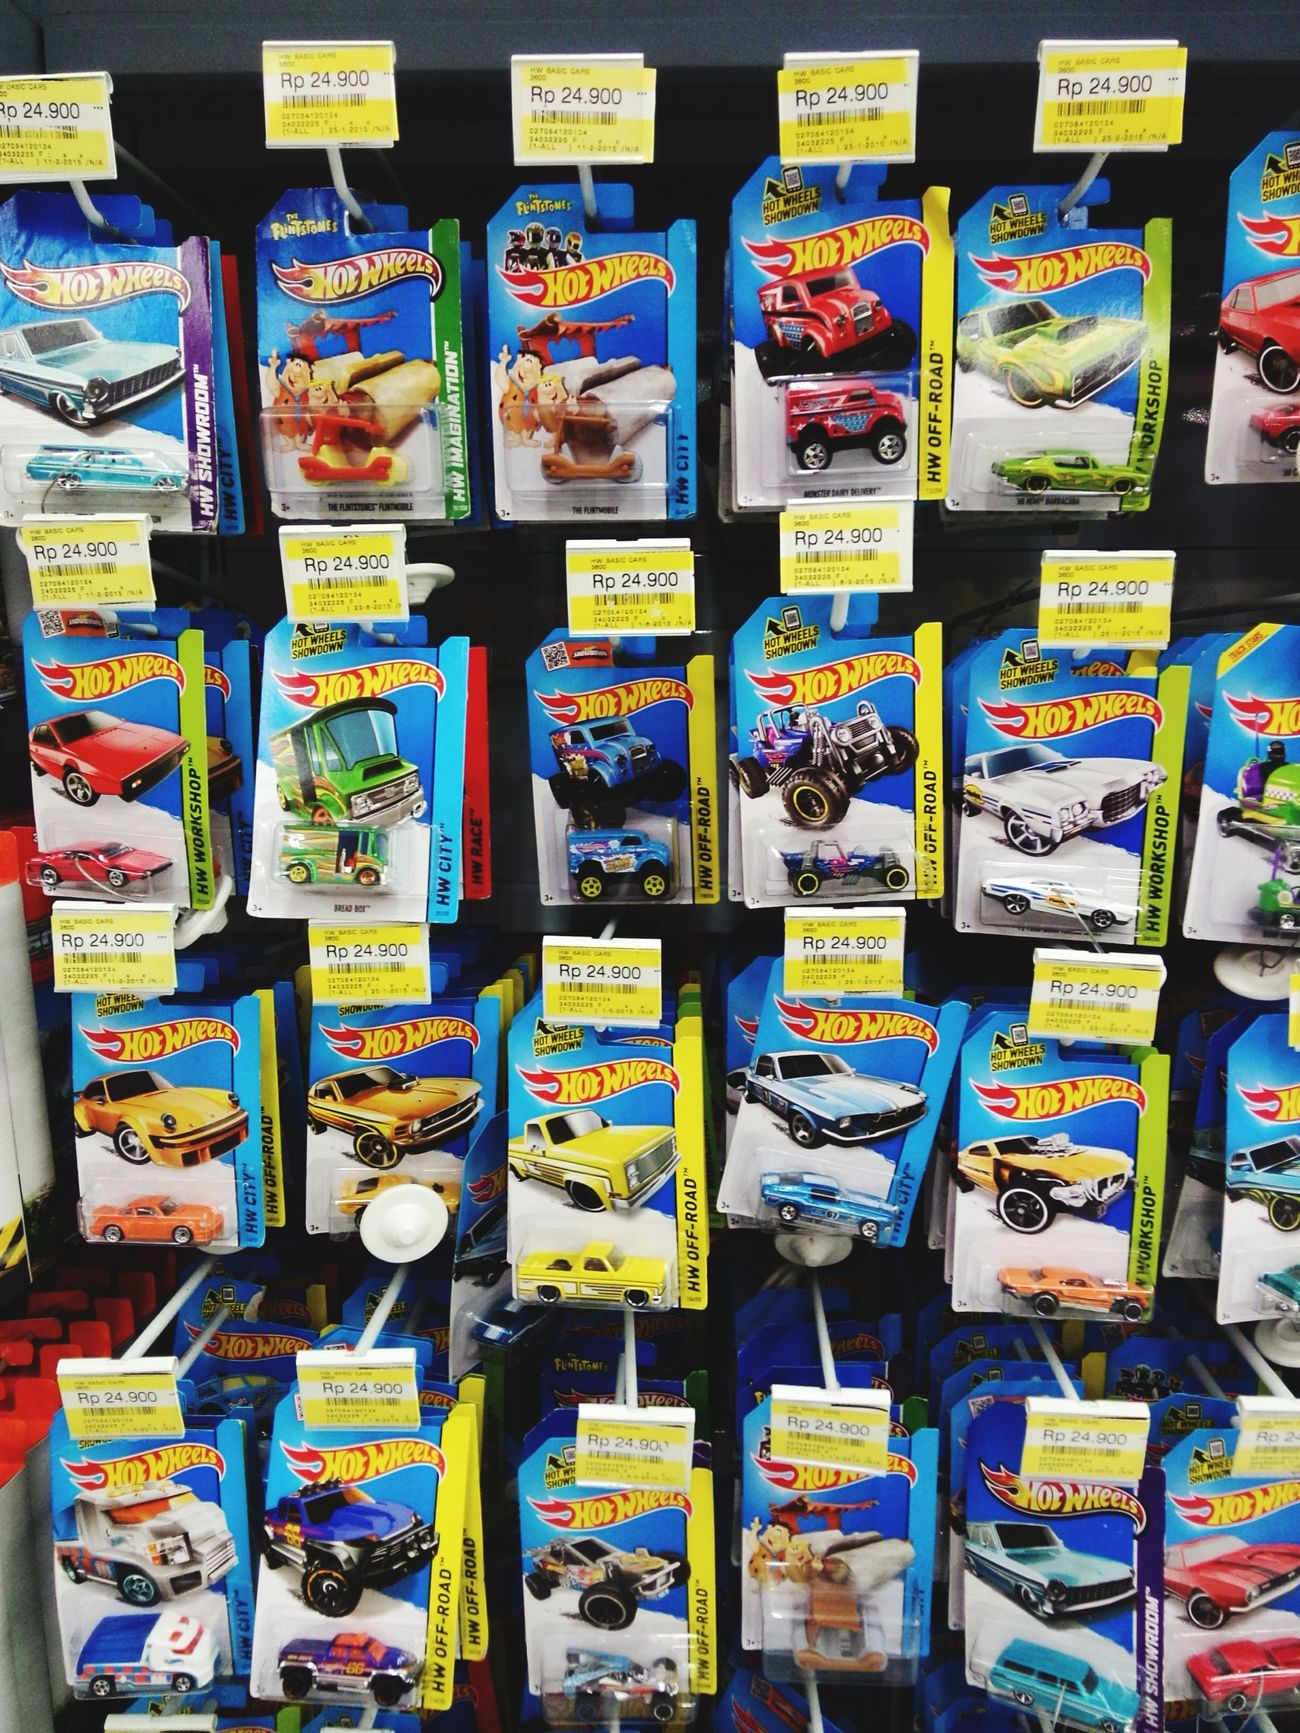 Diecastcars HotWheels Indonesia's Shopping Center Buy Some I Love It ❤